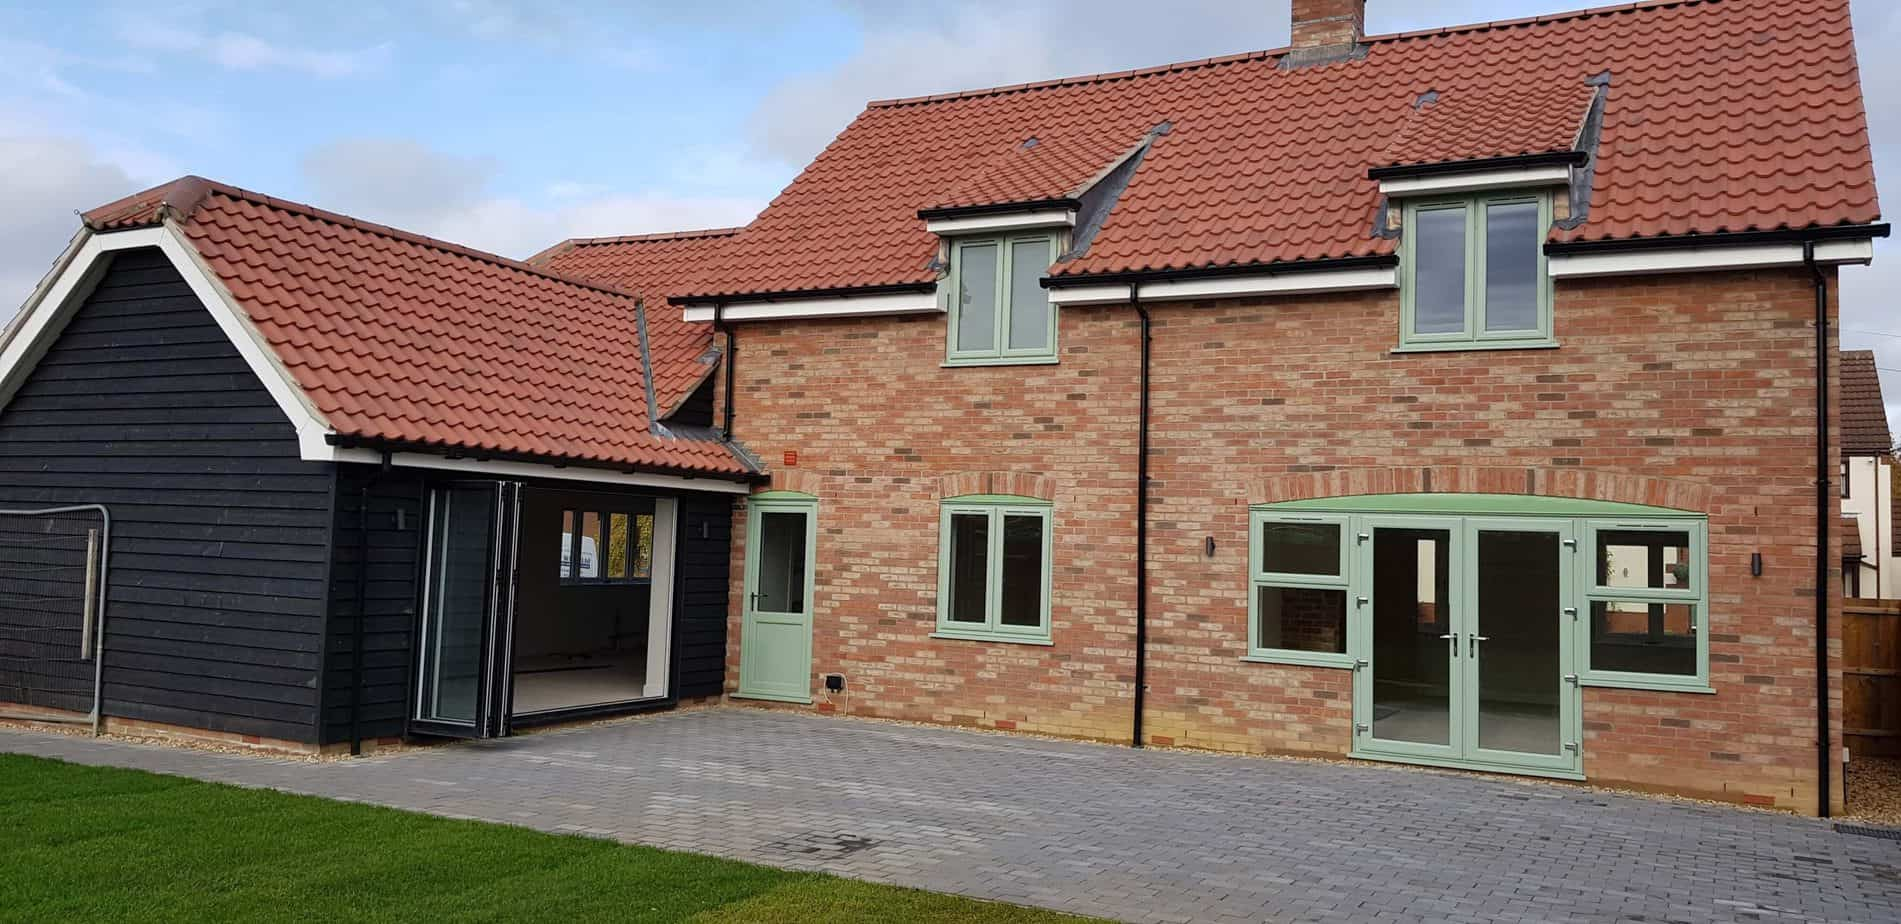 upward-barn conversions-traditional build-plot5-4